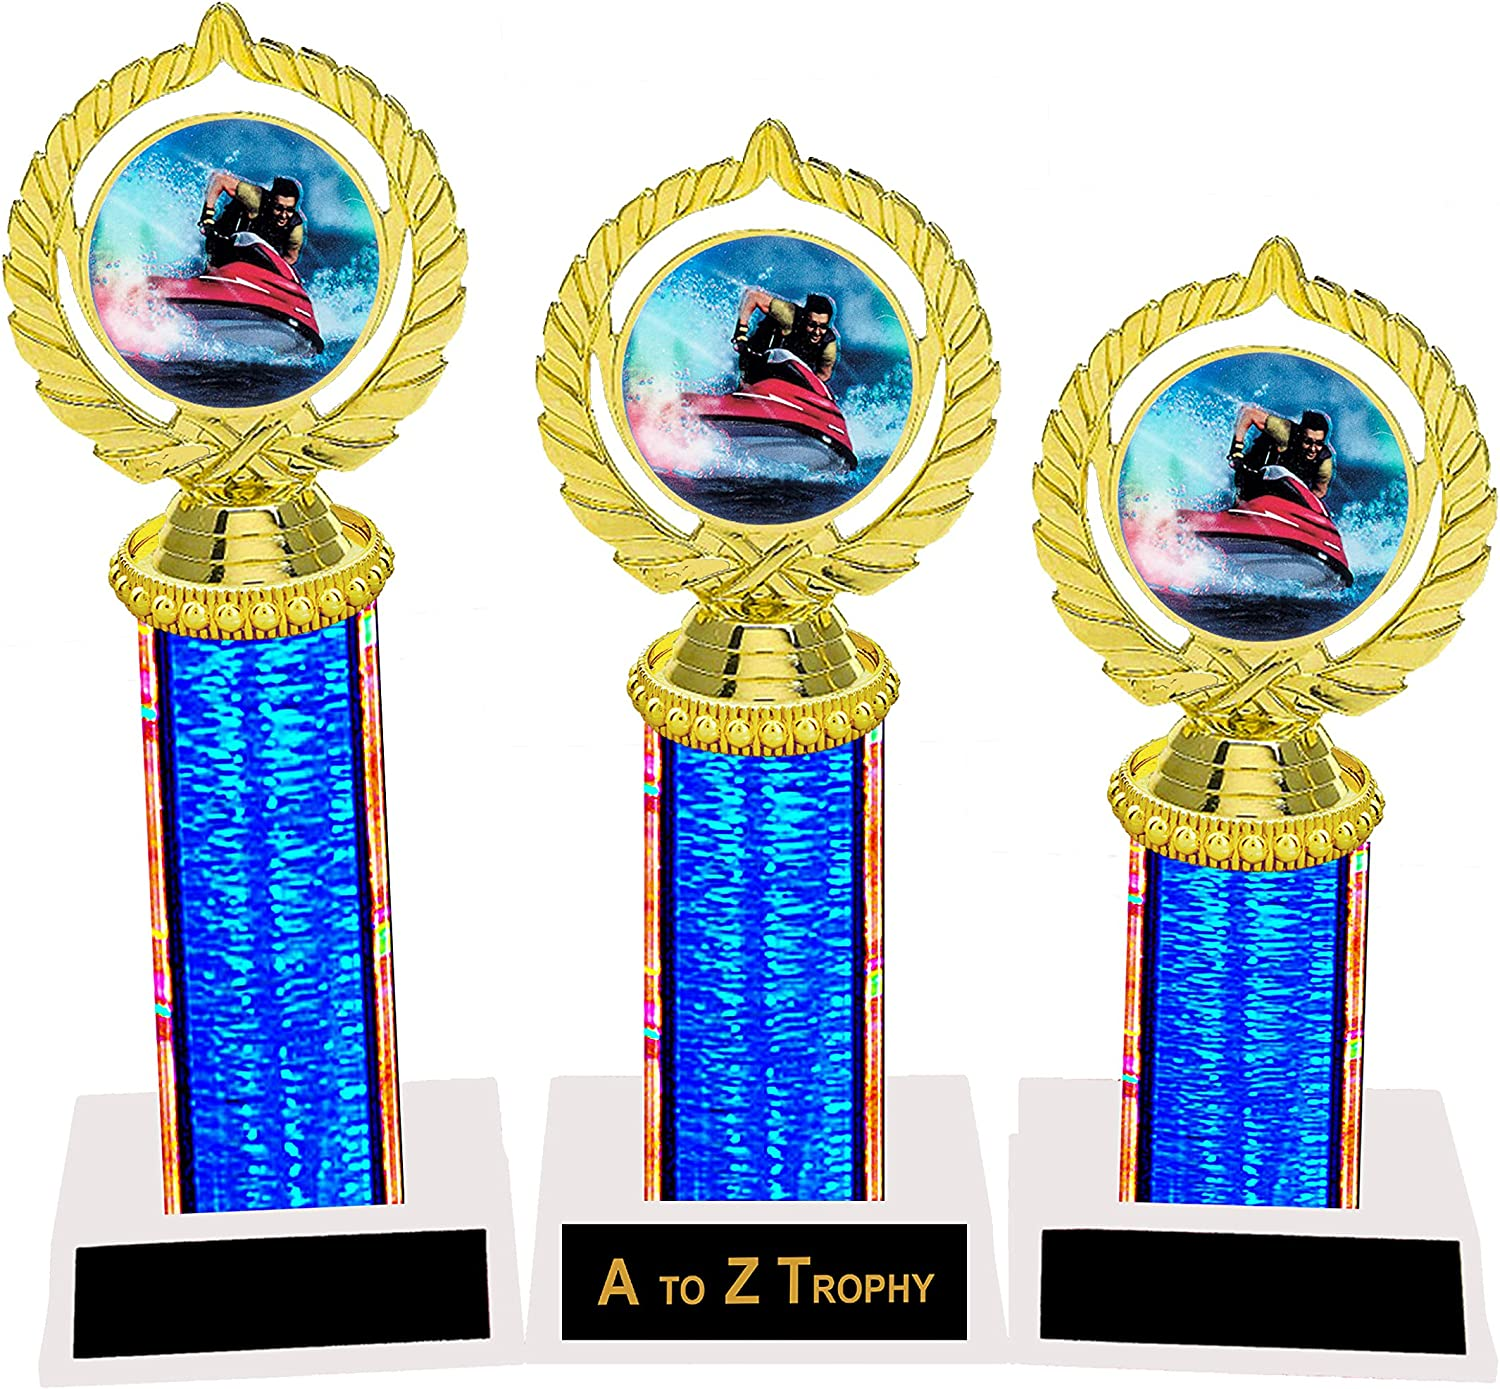 Trophies Wave Runner 1st 2nd 3rd Jet Place Racin Race Ski Trophy Boston Mall Rapid rise